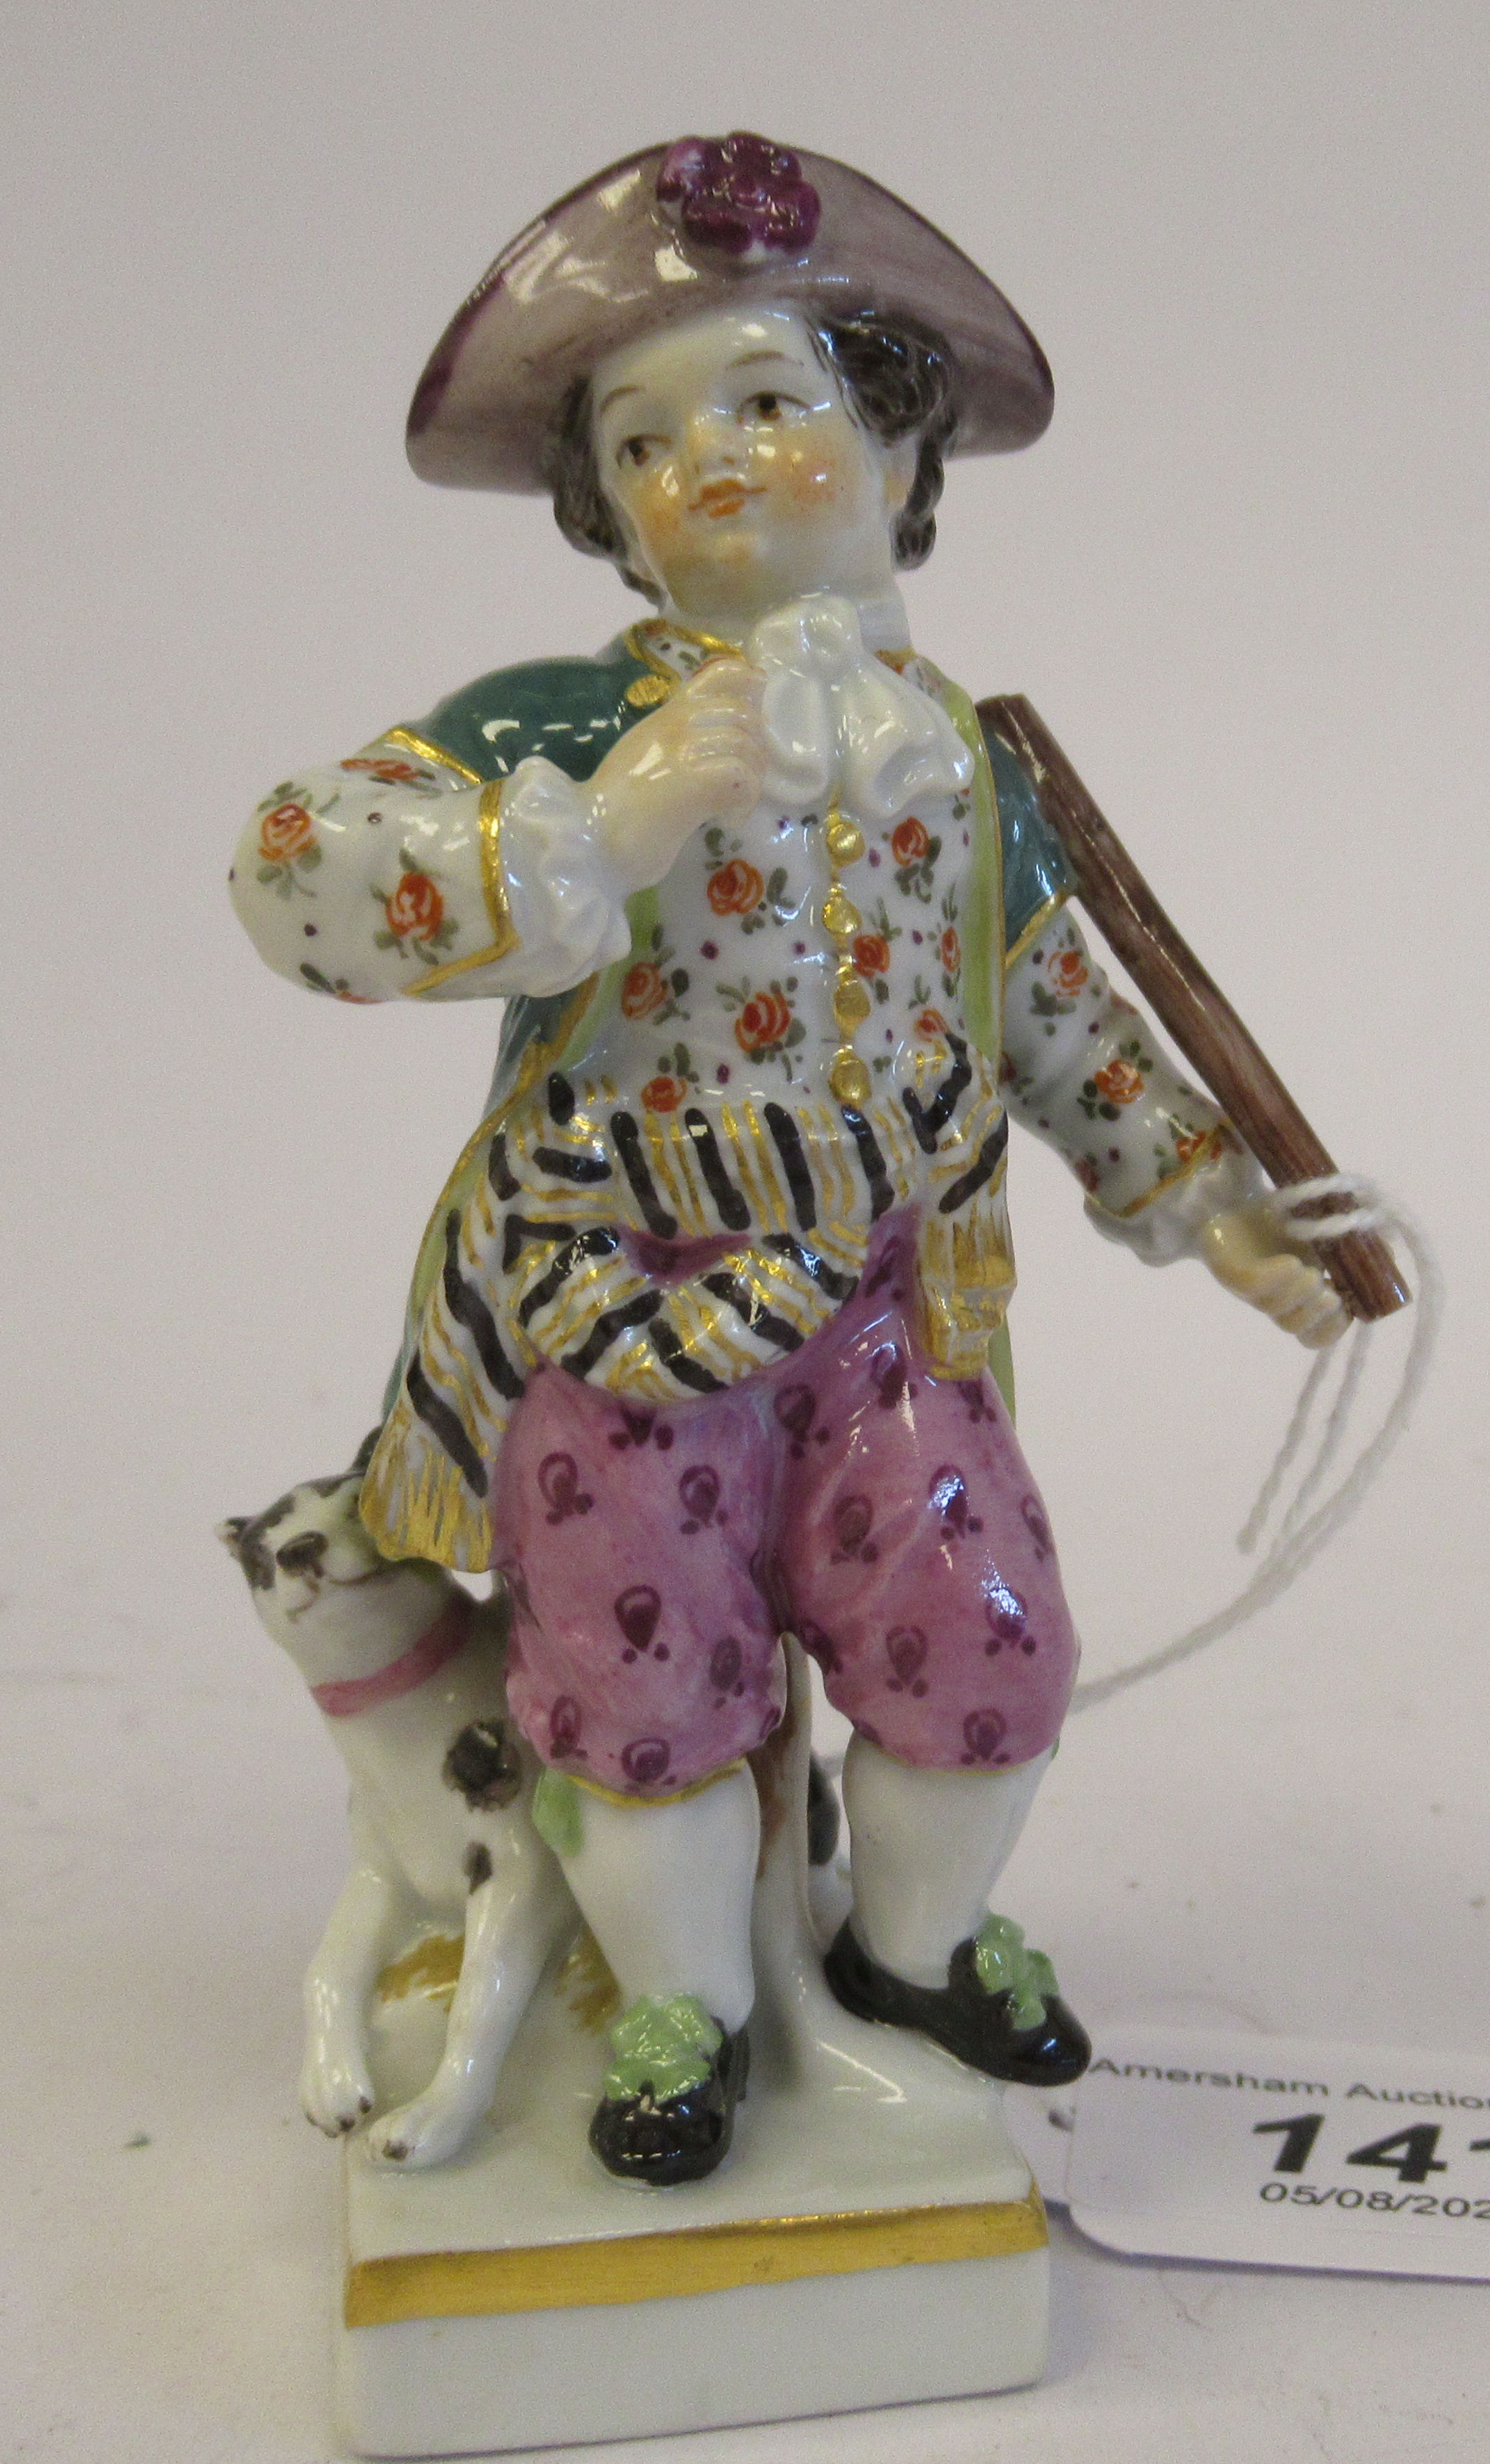 A 19th/20thC Meissen porcelain figure, a boy wearing a frock coat with a dog at his side, on a